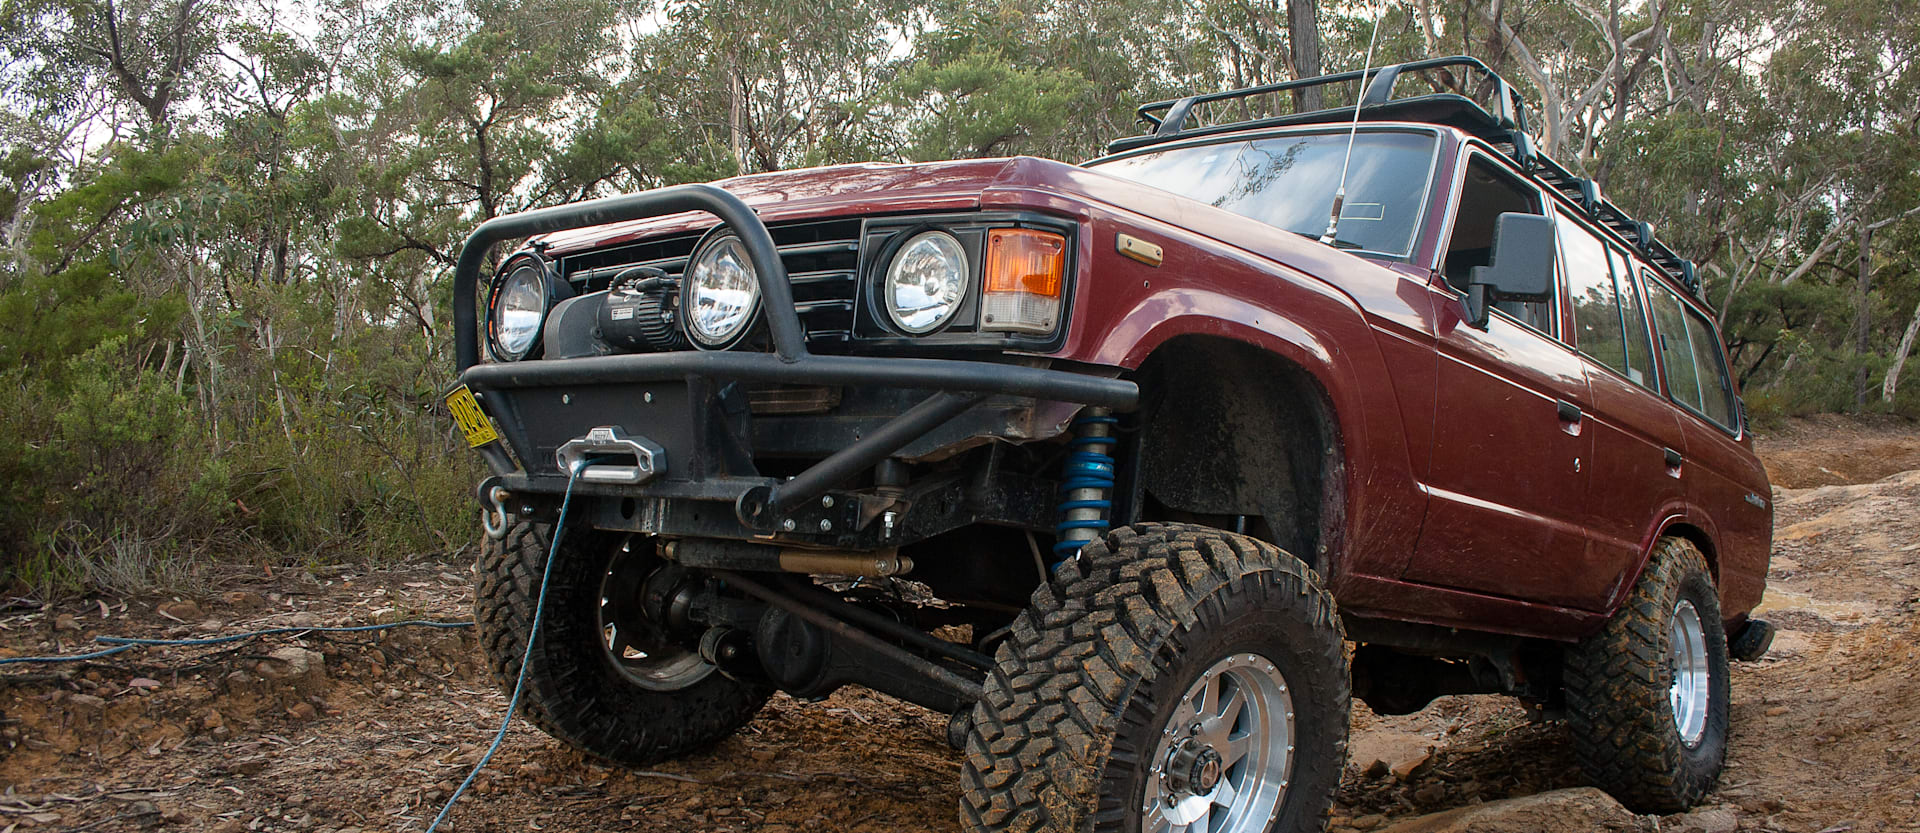 4x4 winch recovery